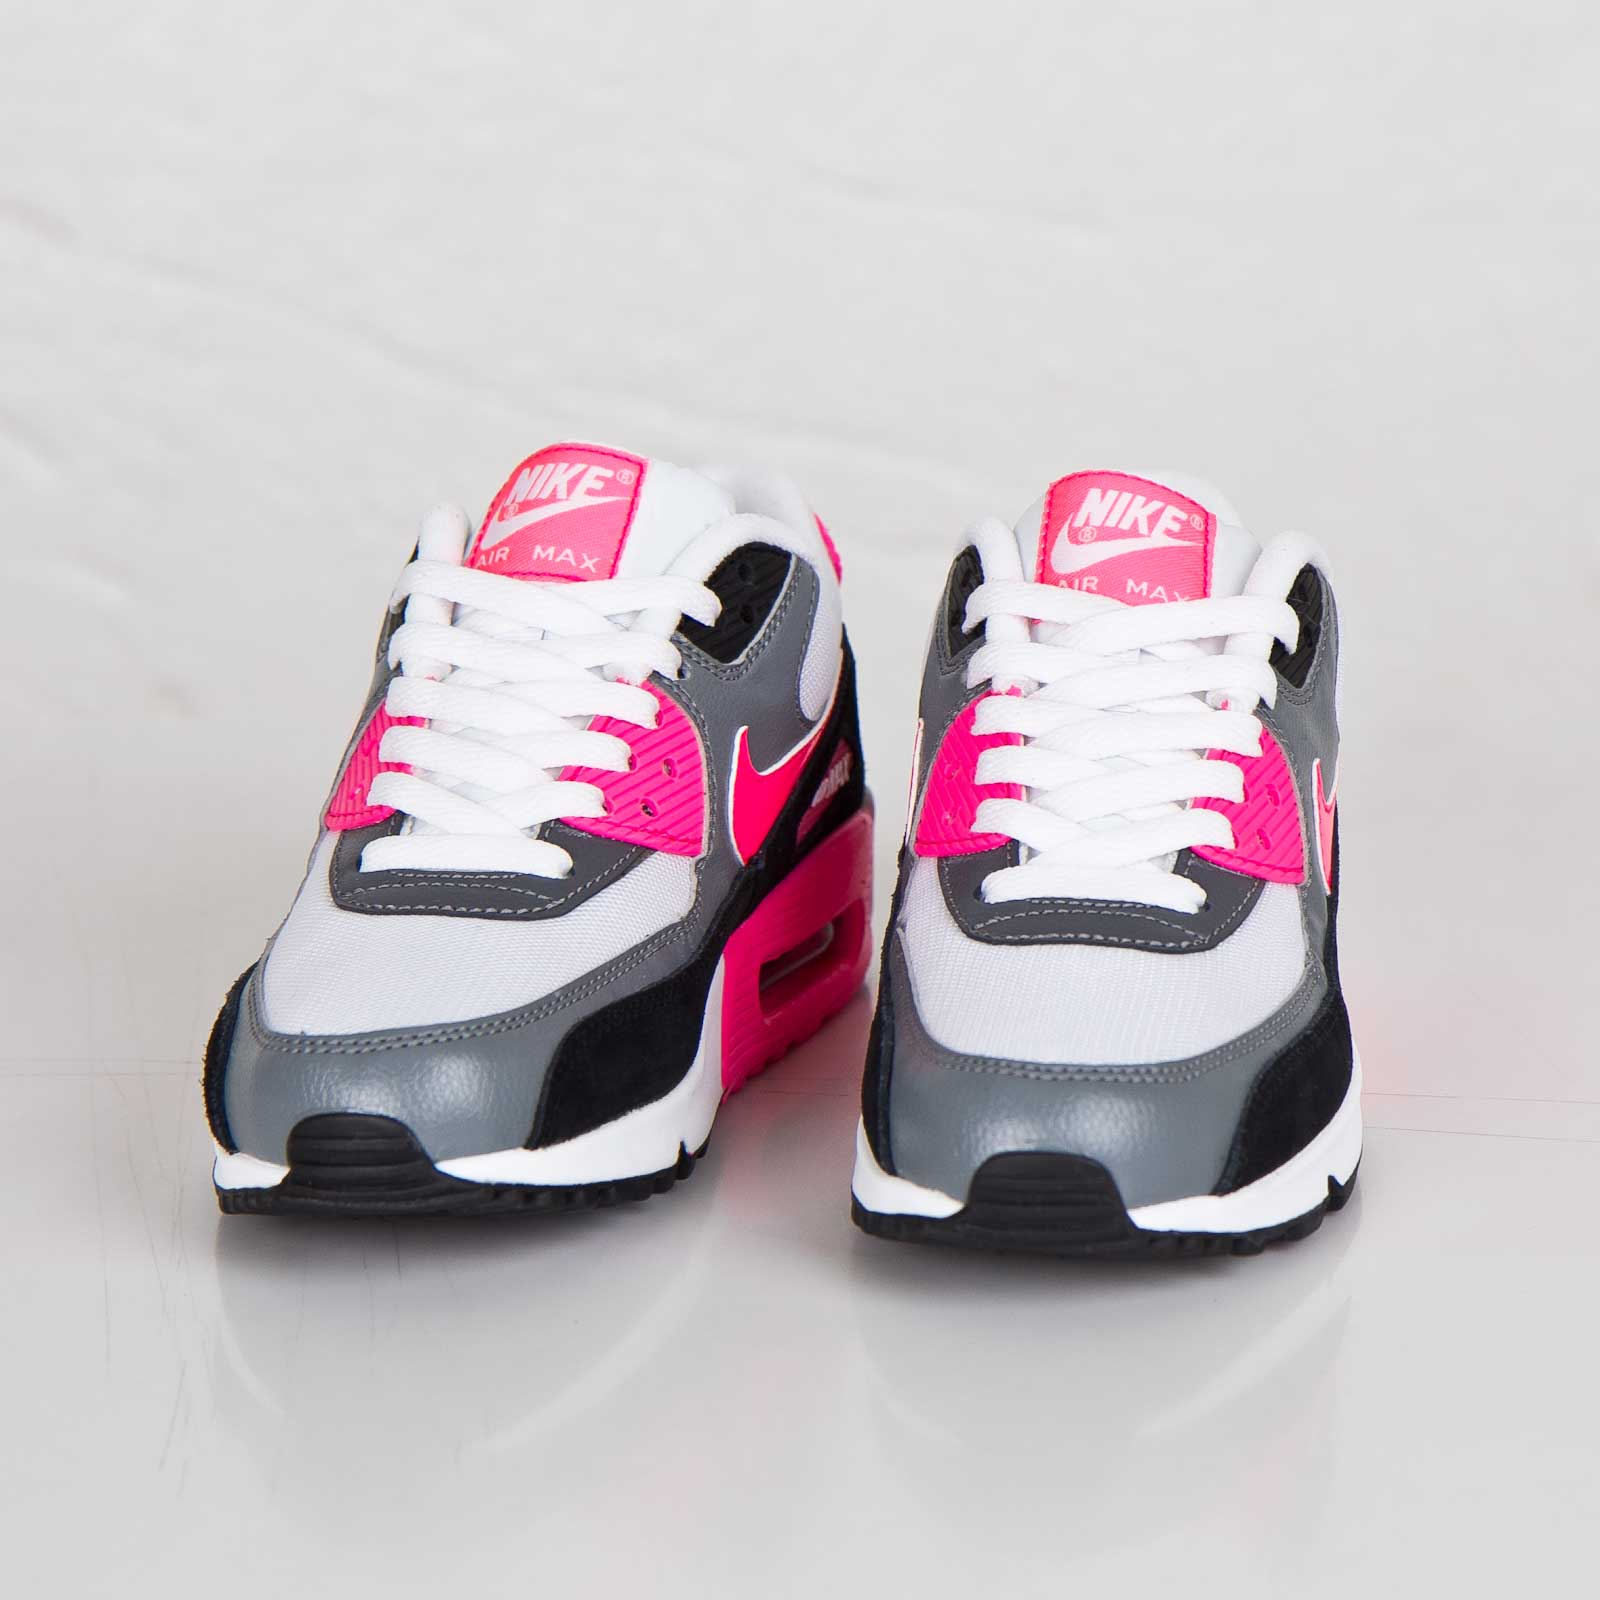 finest selection f0b5e b5412 Nike Wmns Air Max 90 Essential - 616730-101 - Sneakersnstuff   sneakers   streetwear  online since 1999